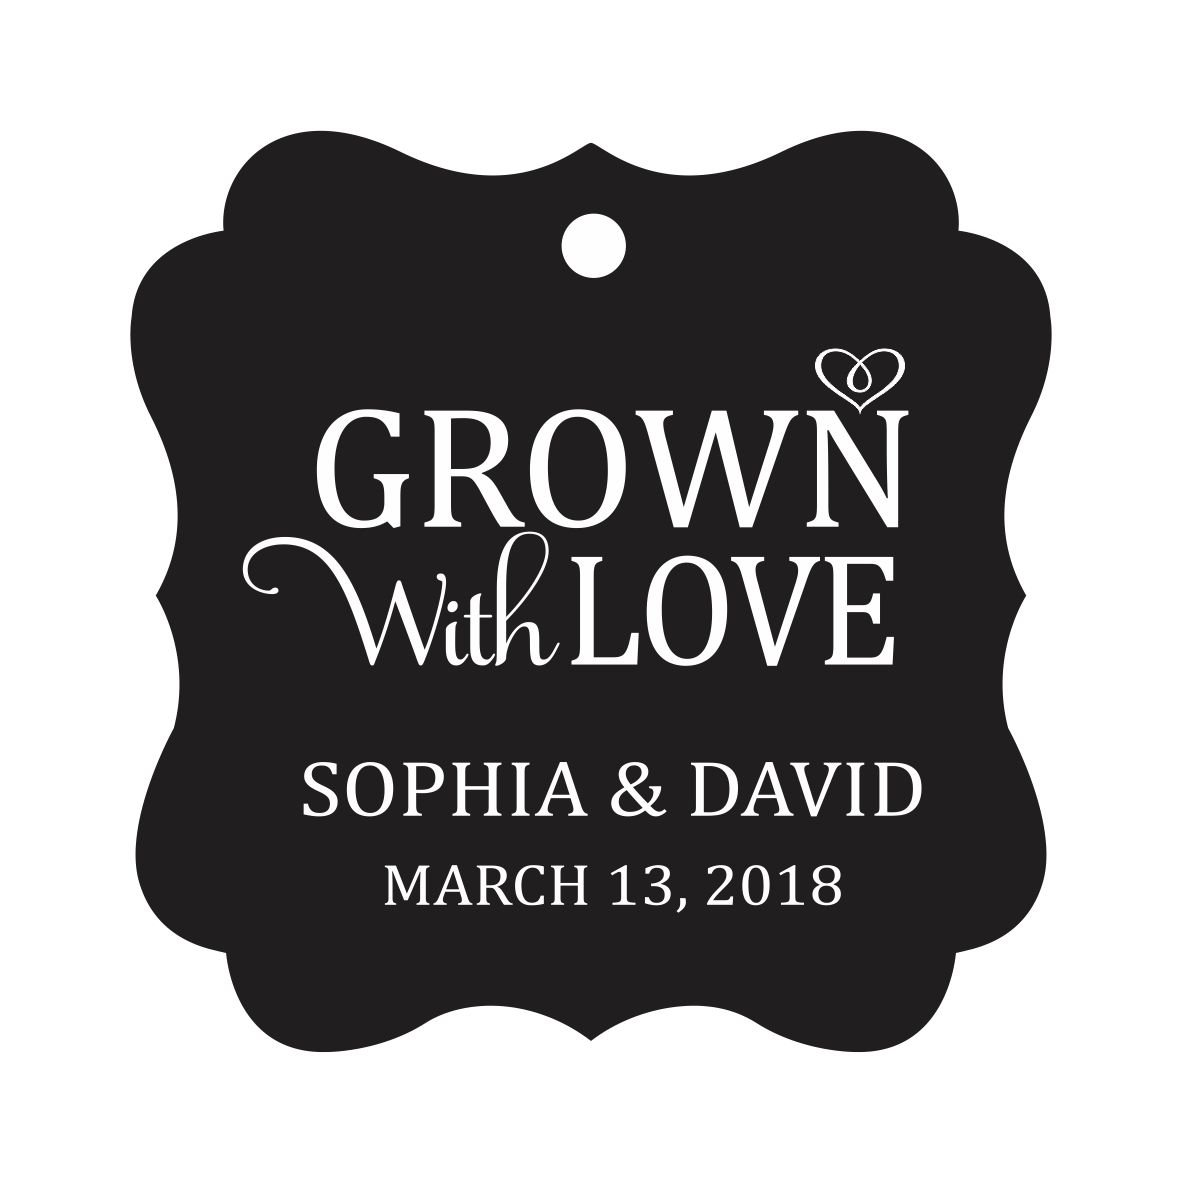 Darling Souvenir Grown With Love Personalized Fancy Frame Bonbonniere Wedding Party Favor Paper Tags-Black-100 Tags